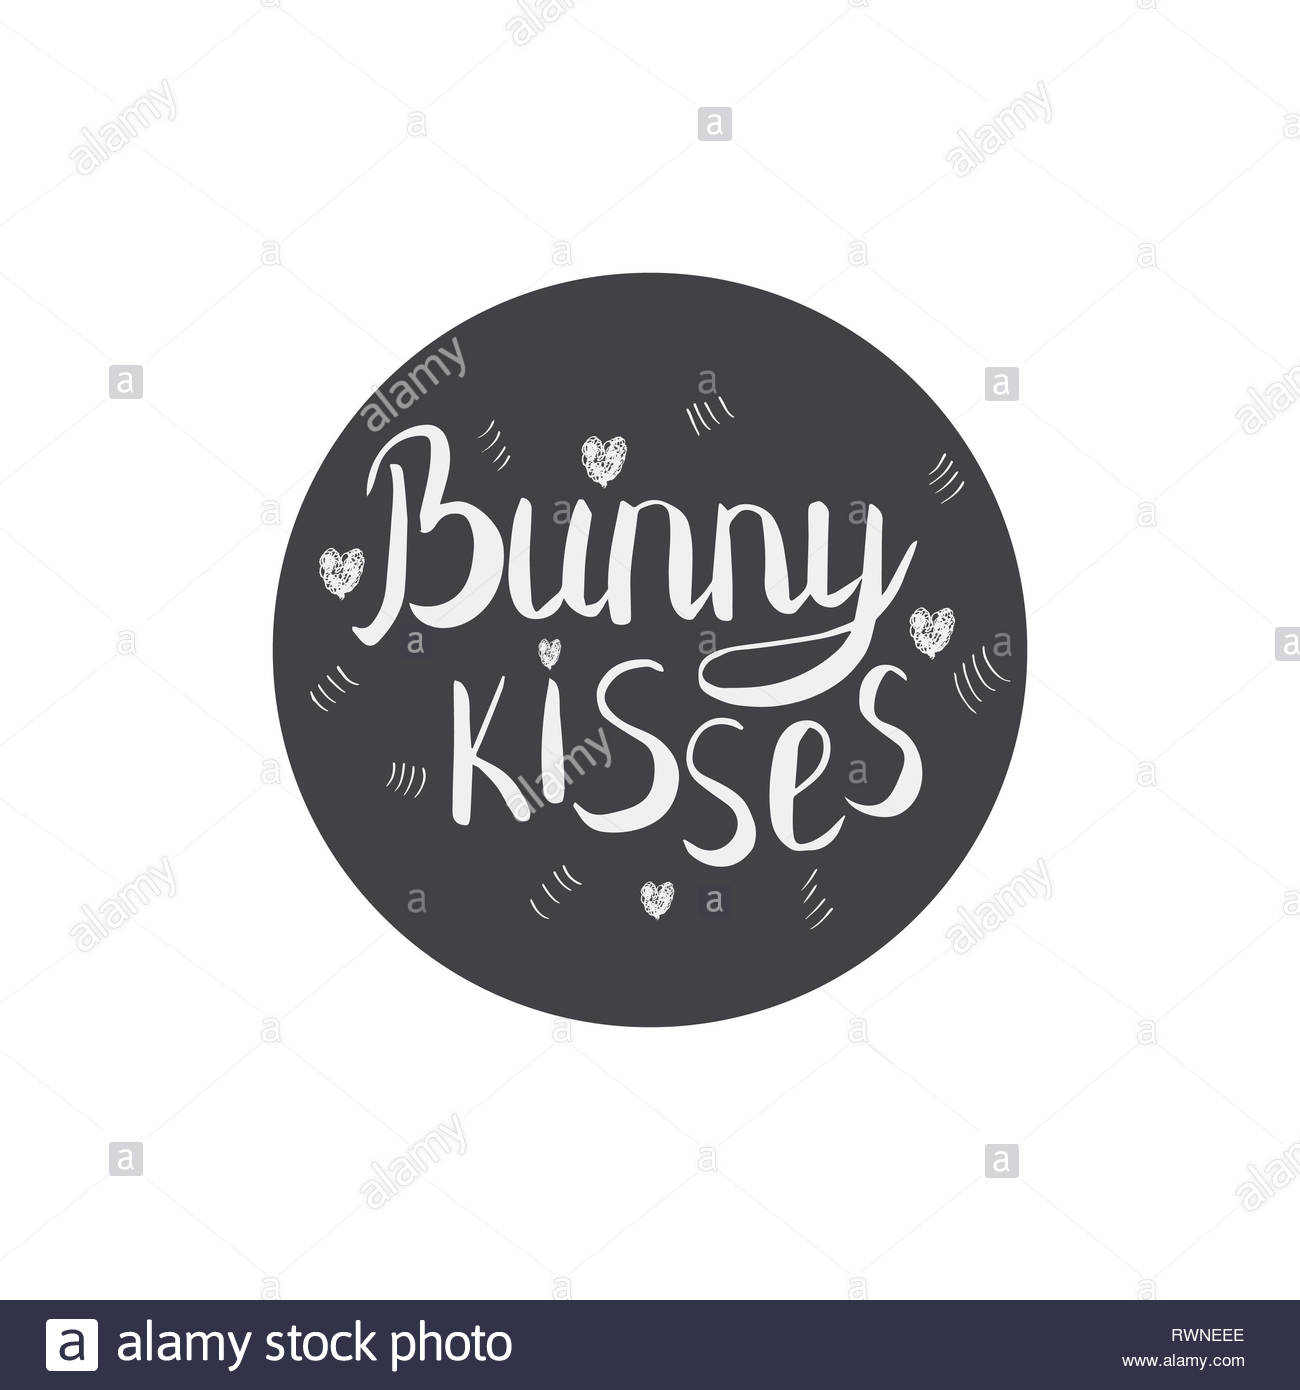 Bunny kisses calligraphy  Circle with hand lettering  Ink sketch